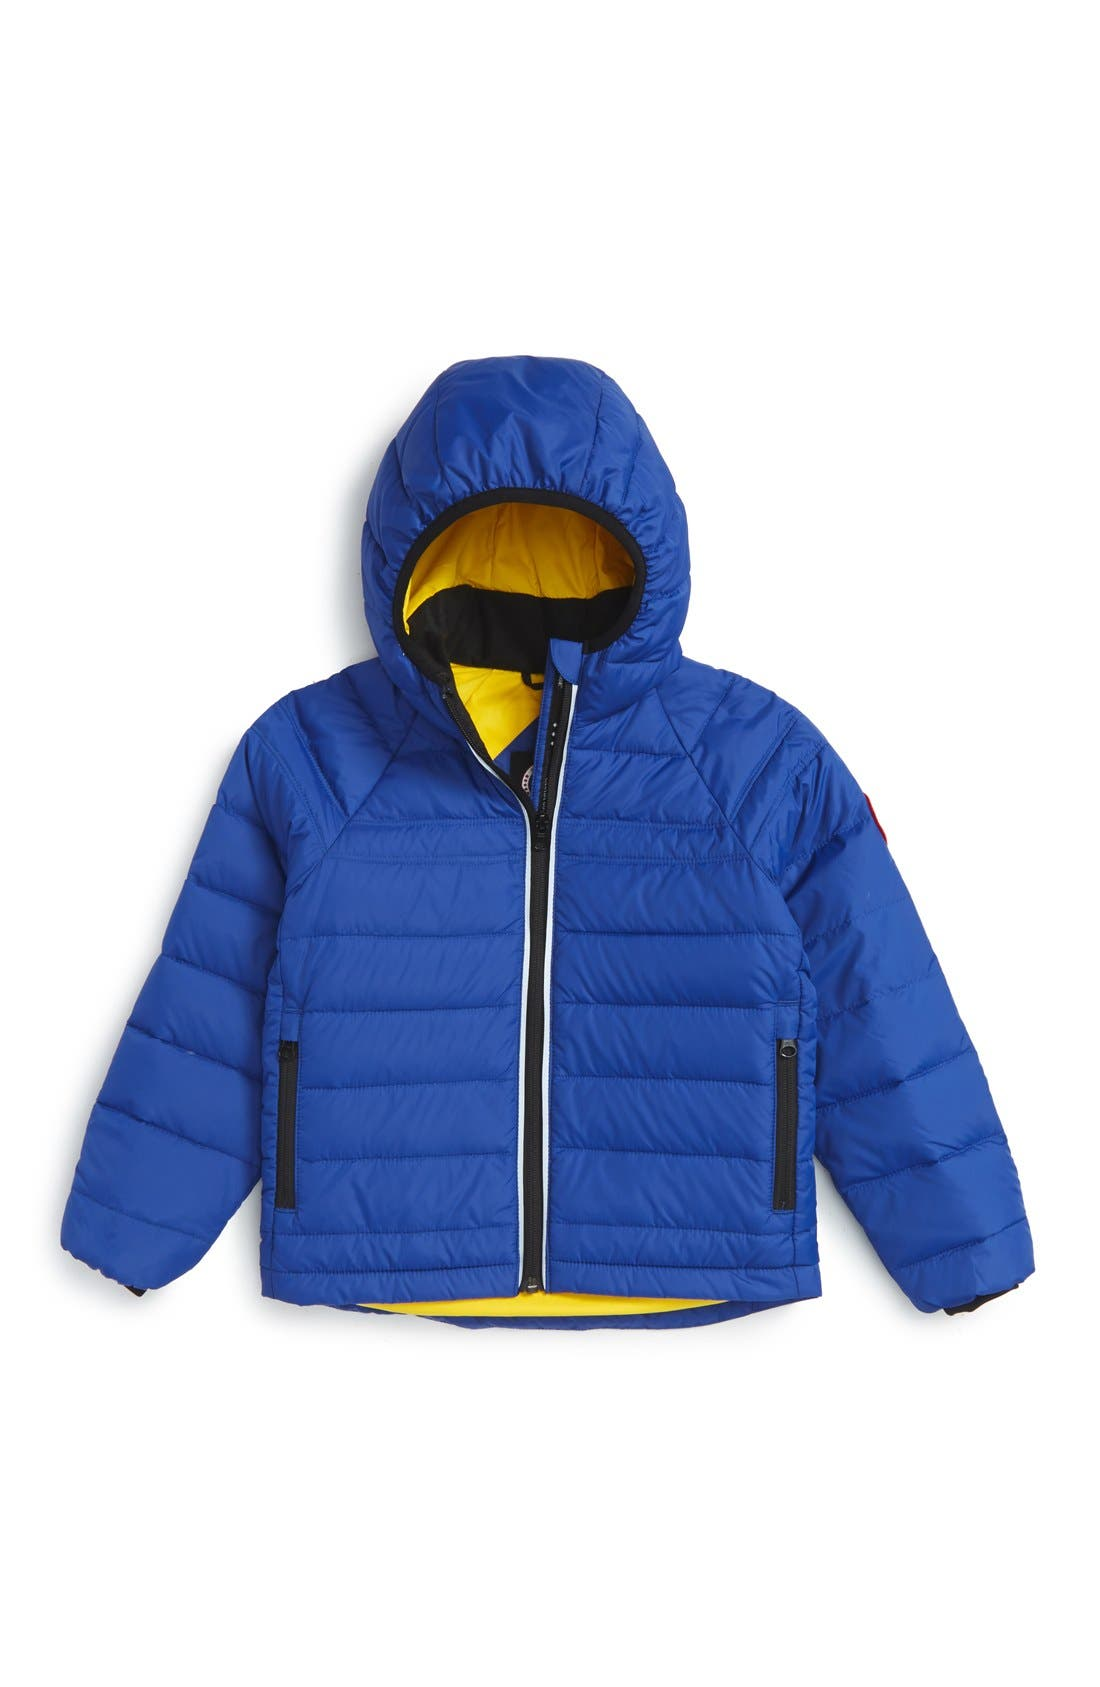 Main Image - Canada Goose 'Bobcat' Packable Down Coat (Toddler & Little Kid)